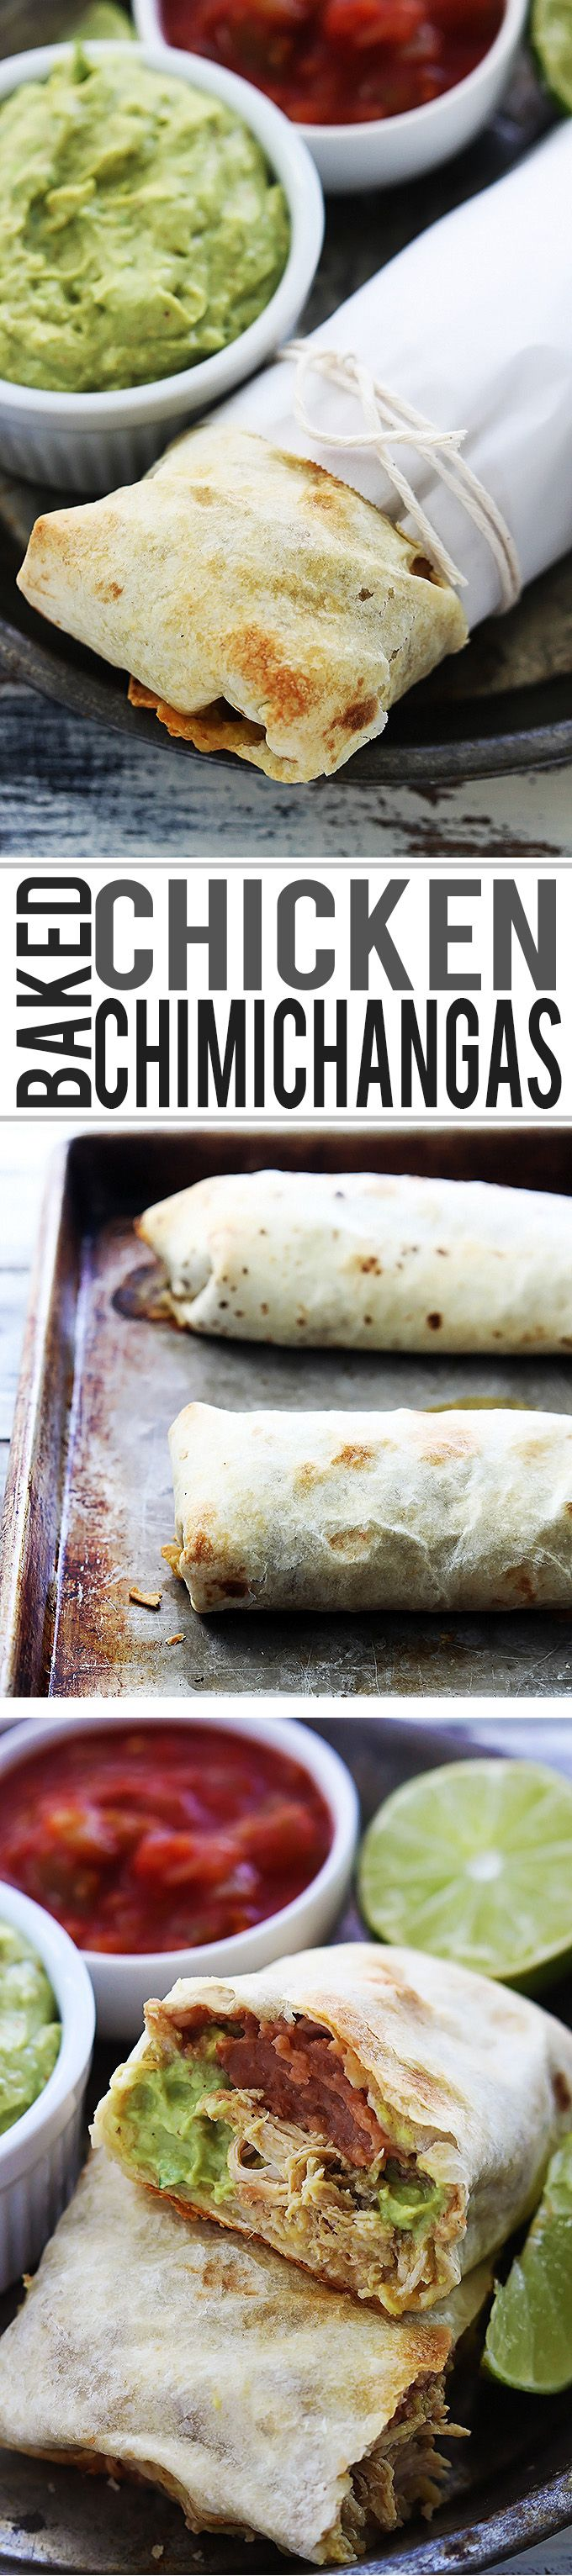 Crispy, healthy baked (not fried!) chicken chimichangas you can whip up in a hurry!